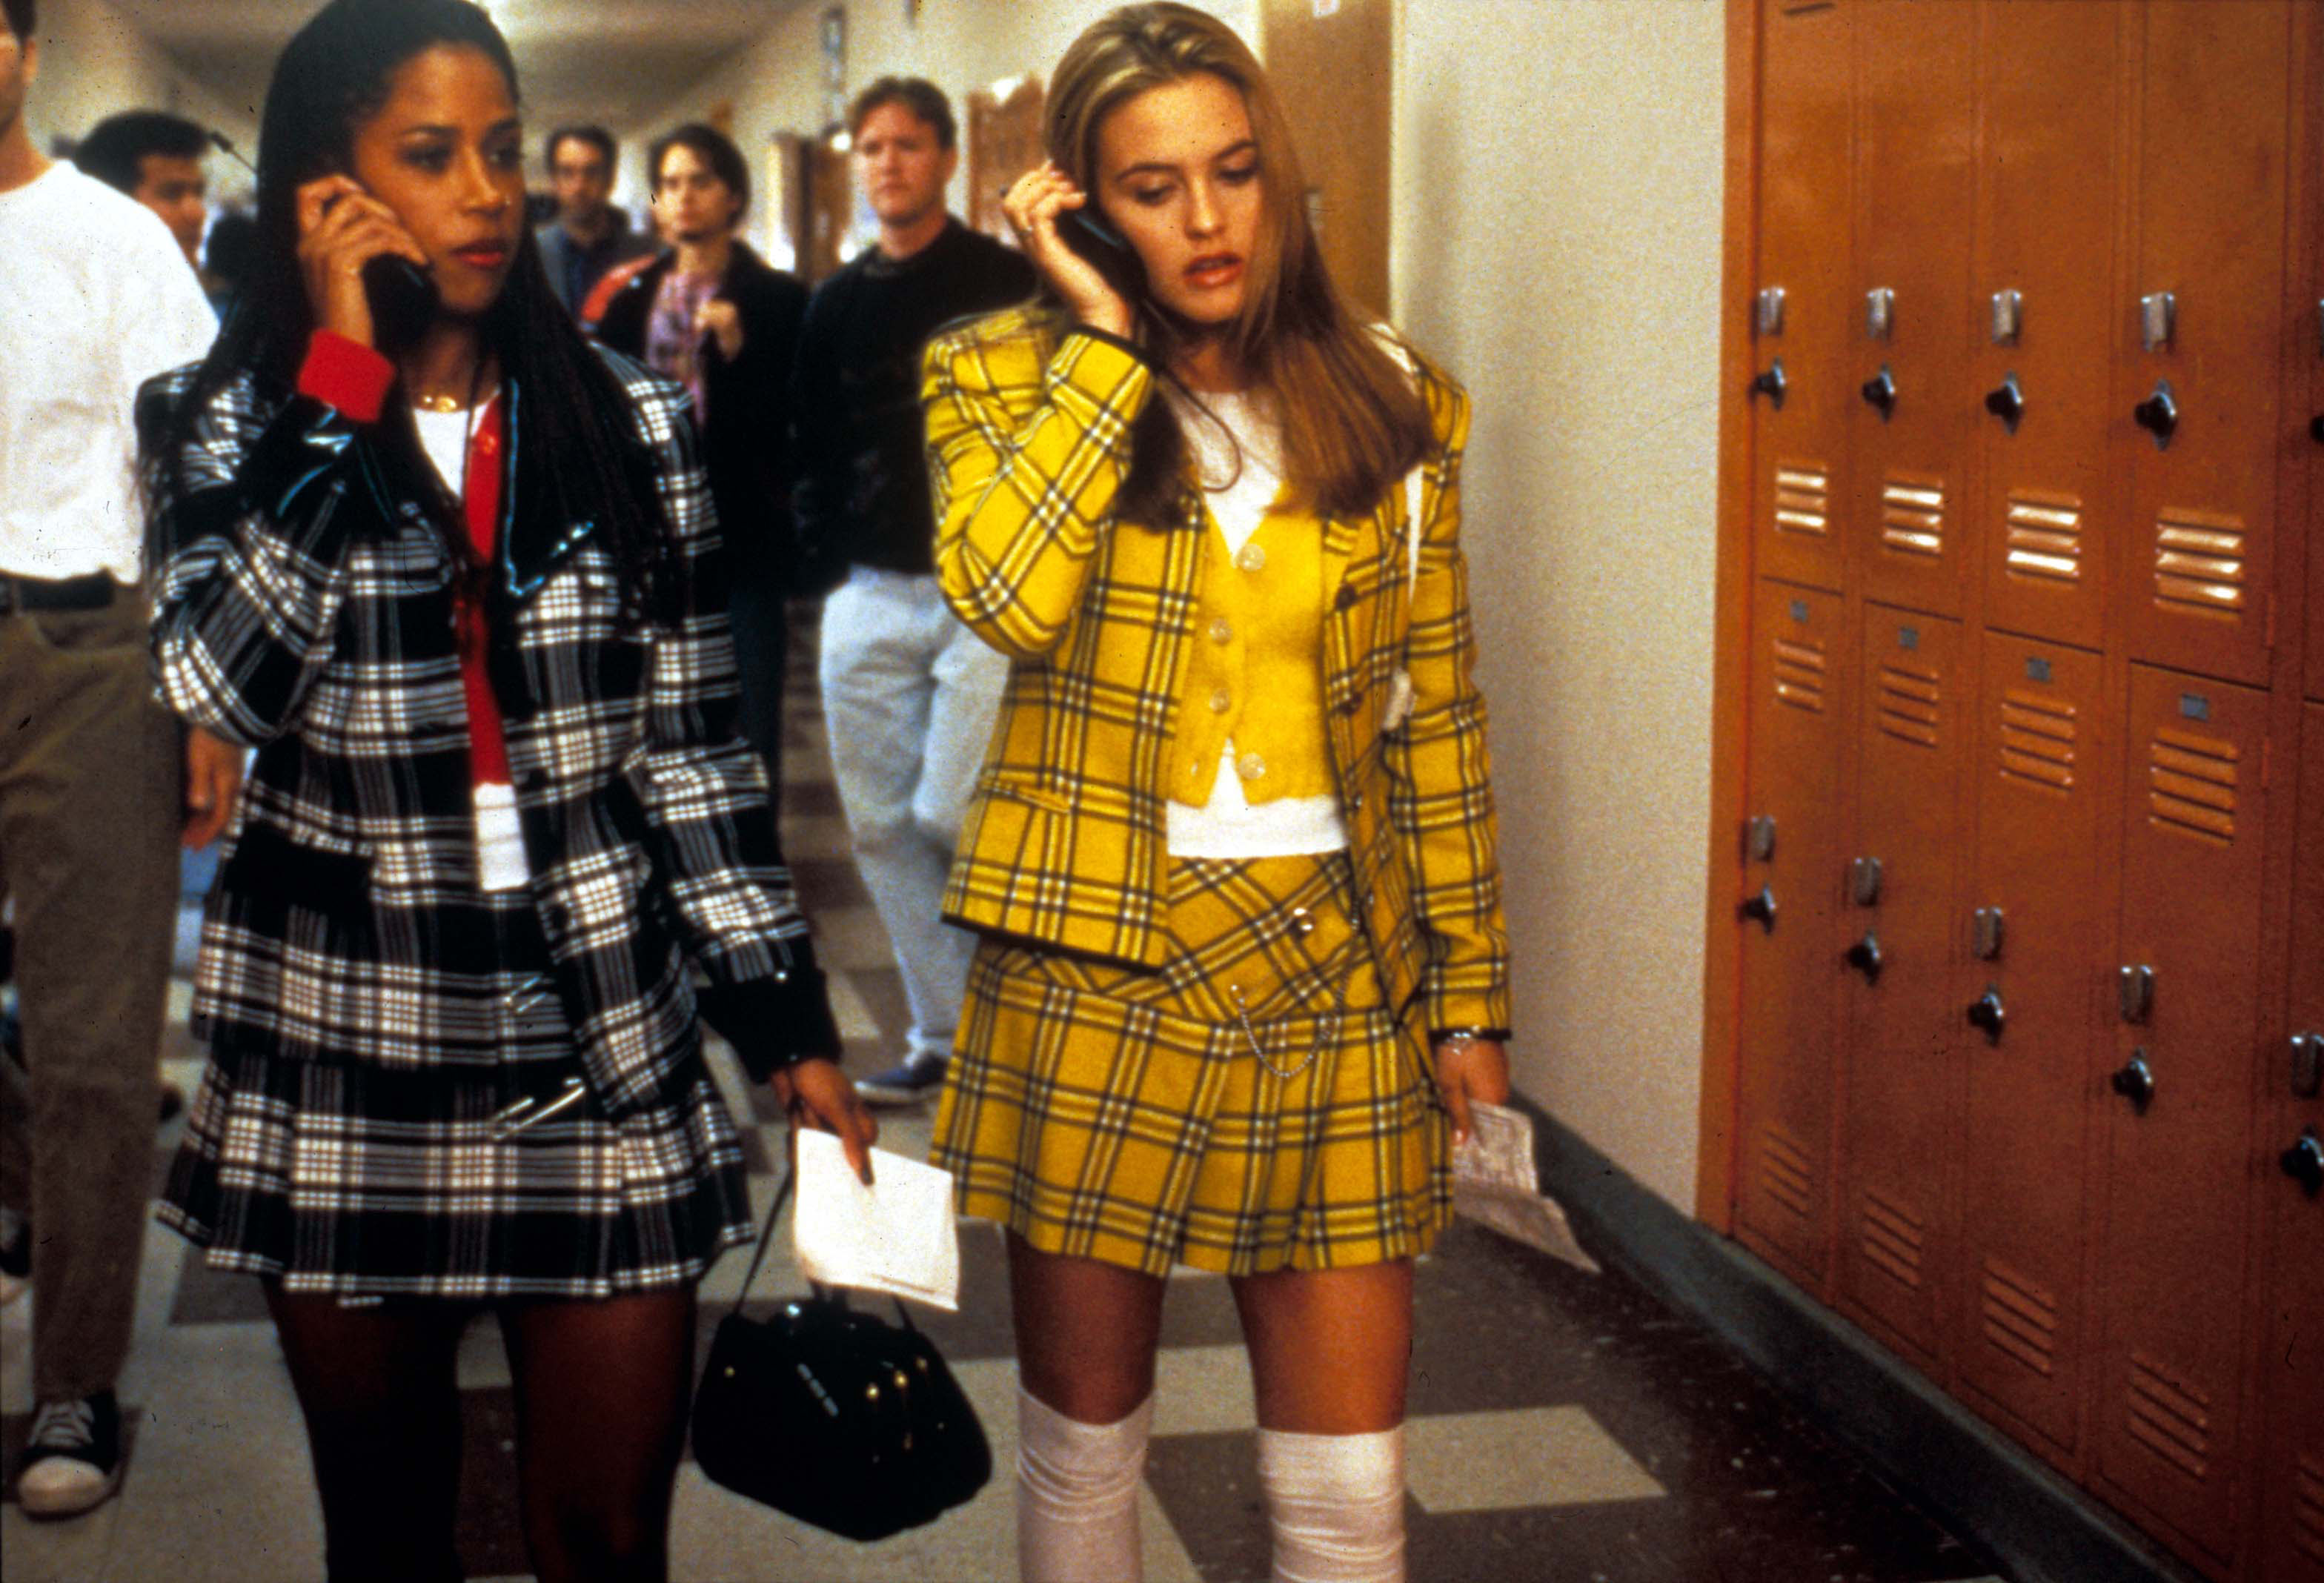 CLUELESS (1995) STACEY DASH, ALICIA SILVERSTONE